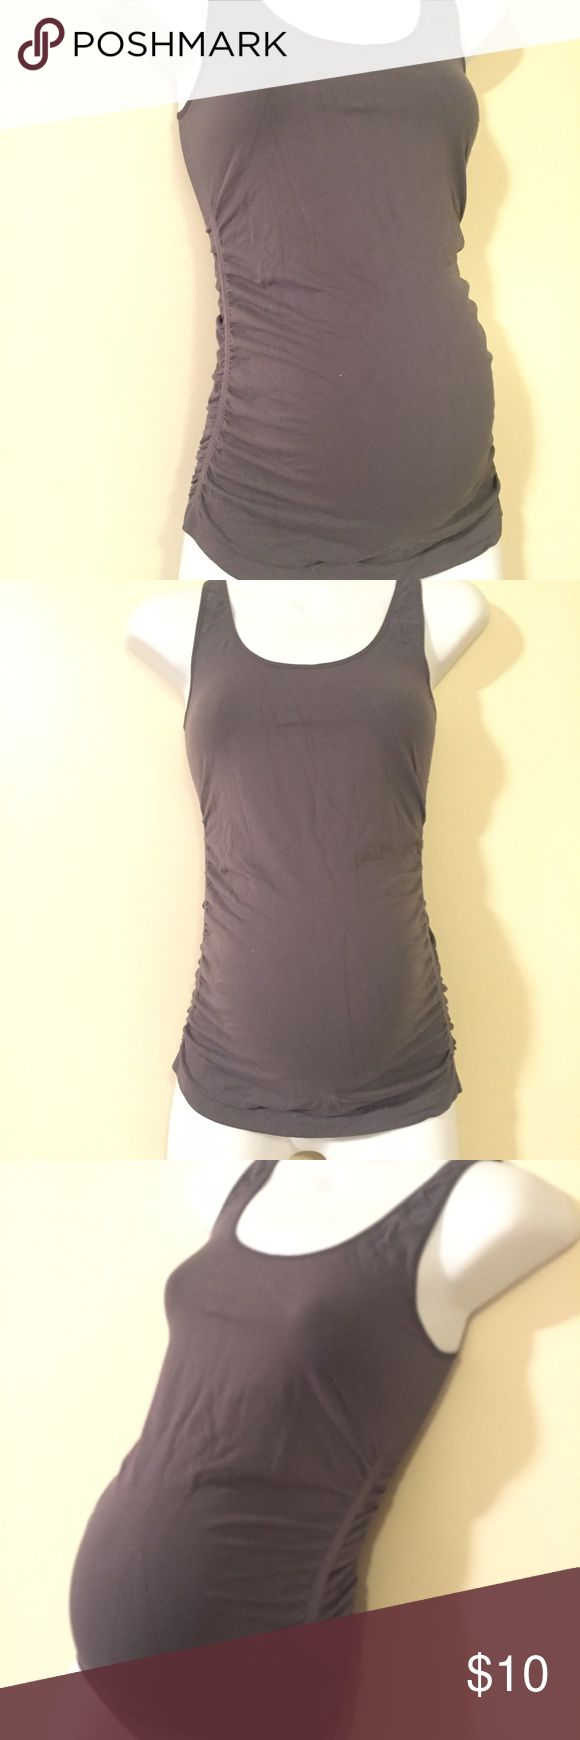 Stretchy maternity cami size small medium Great condition stretchy maternity cami size small medium. Ruched sides and long length. Perfect as an under shirt or under a cami or jacket. Tops